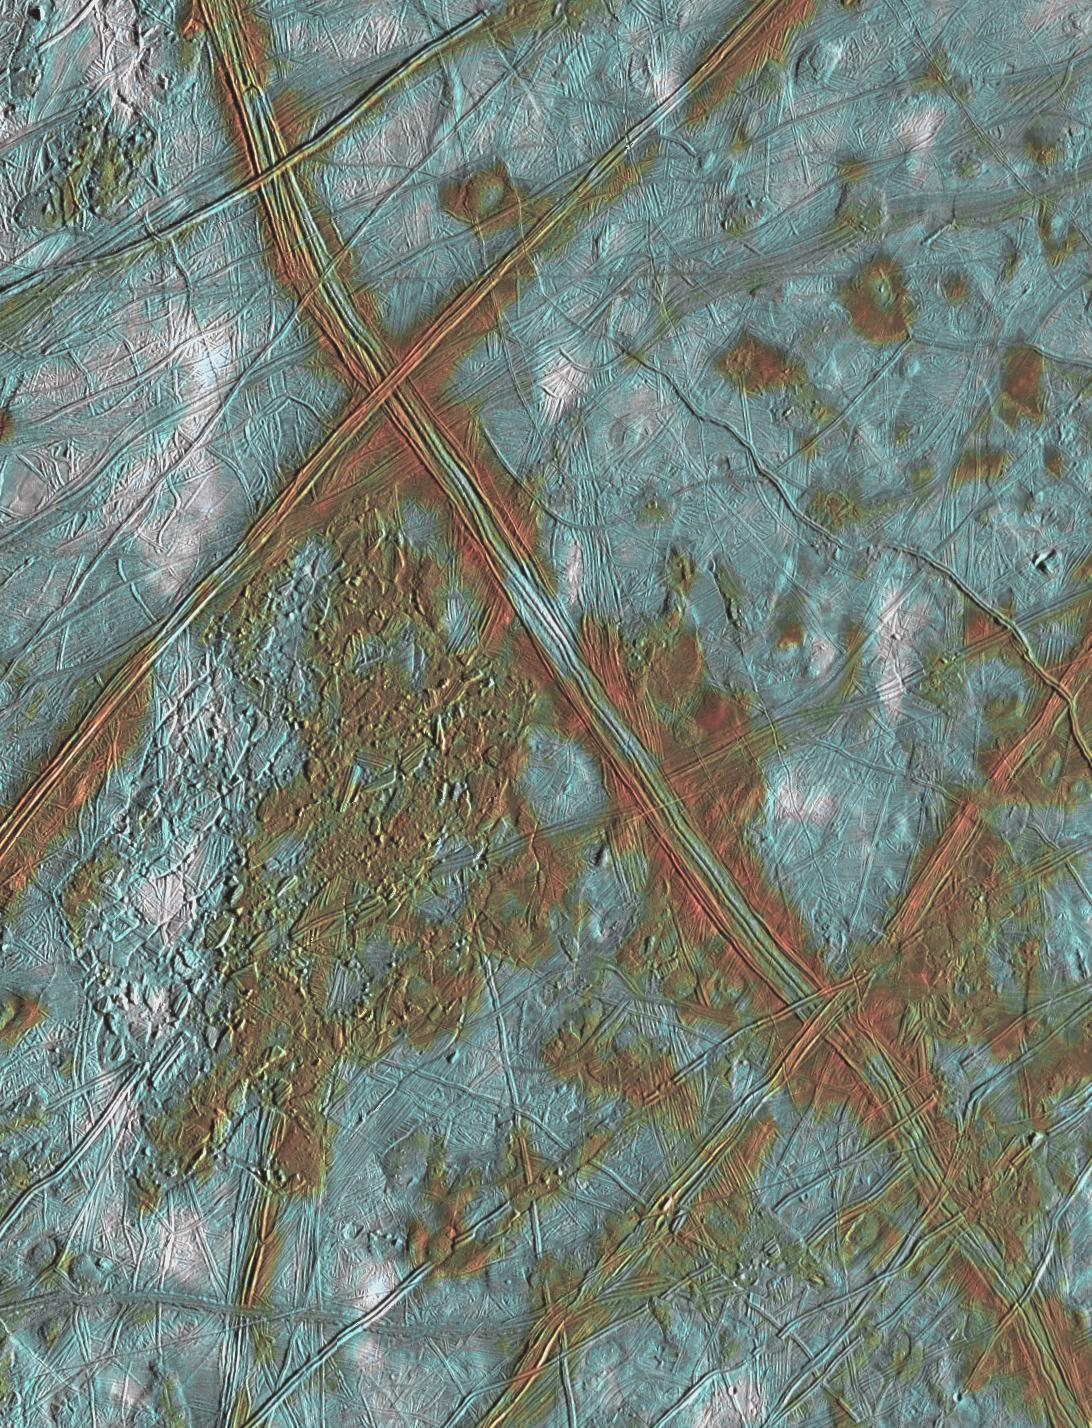 An image of the surface of Europa